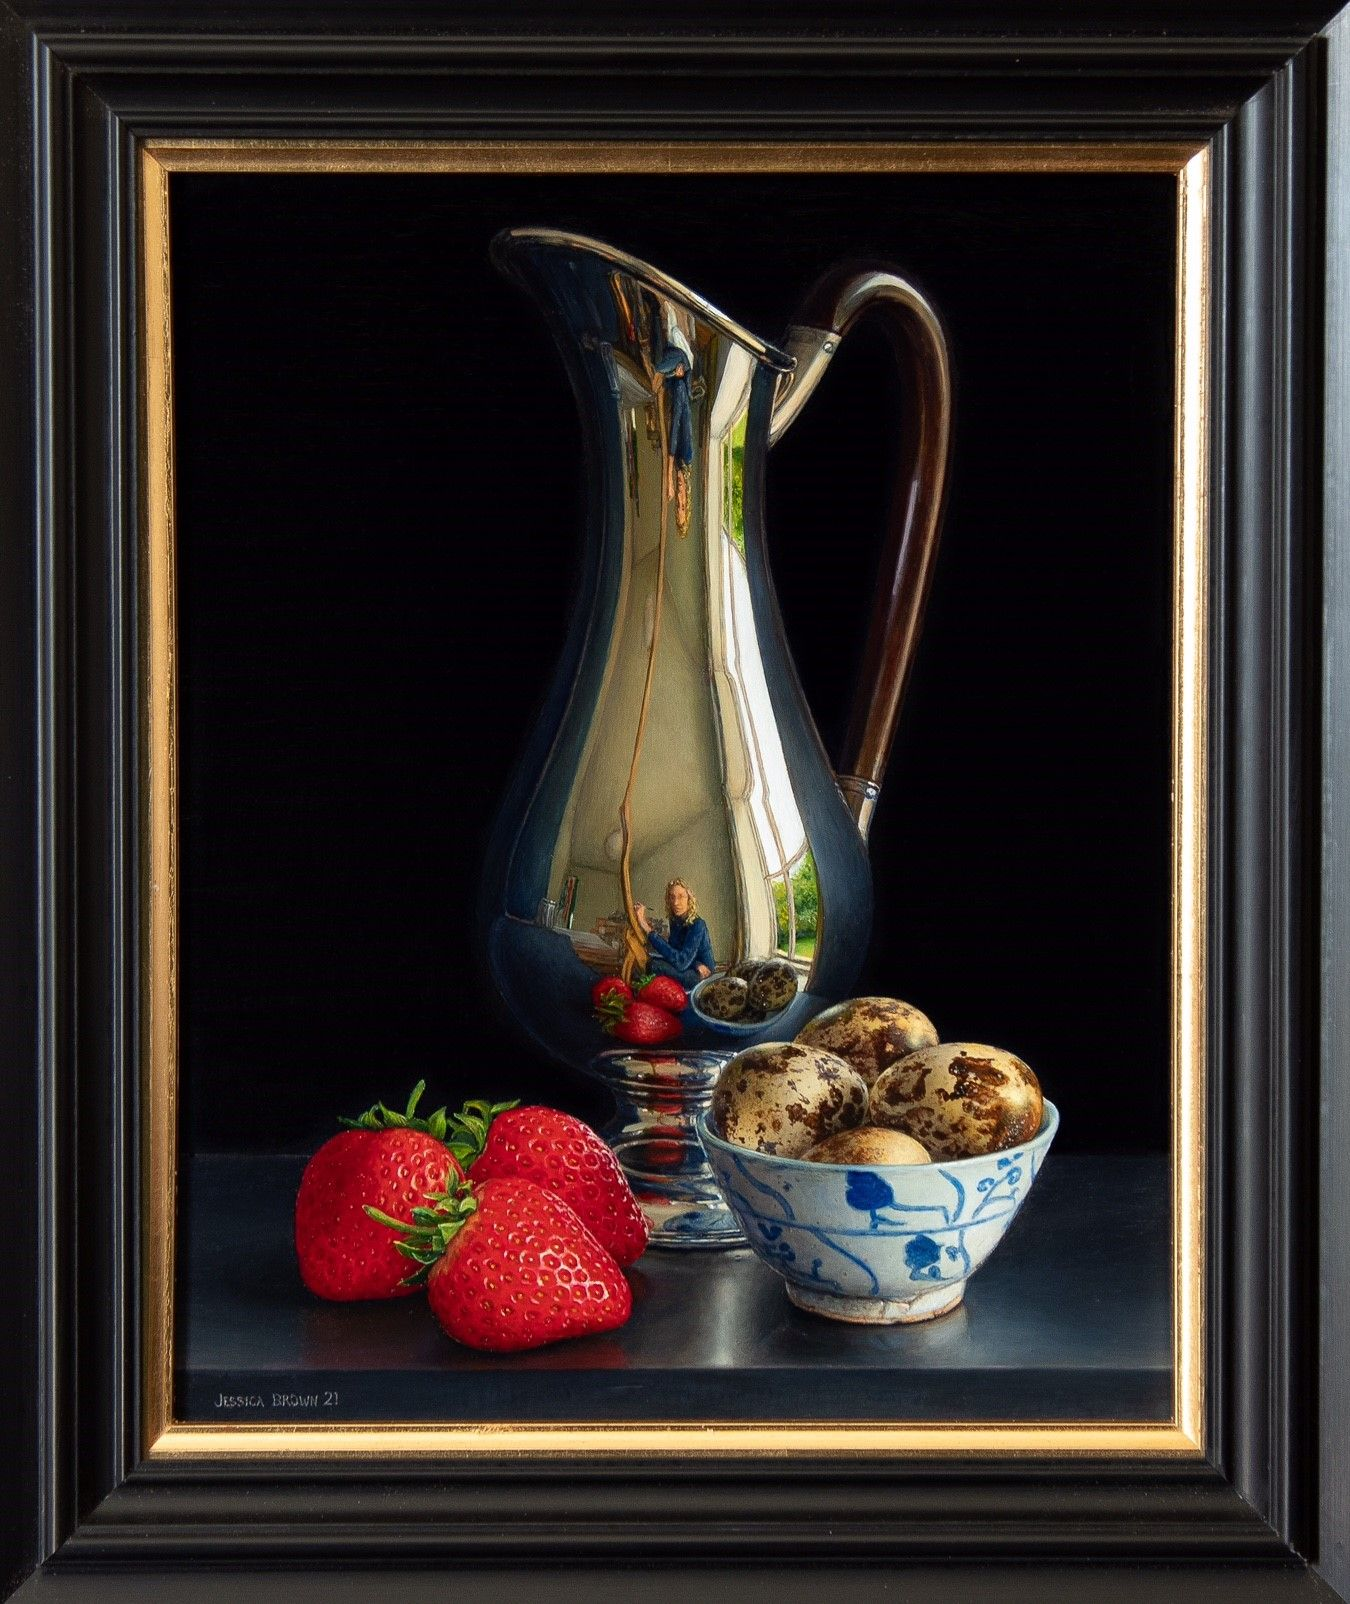 Still Life with Silver Jug, Quails Eggs and Three Strawberries by Jessica Brown